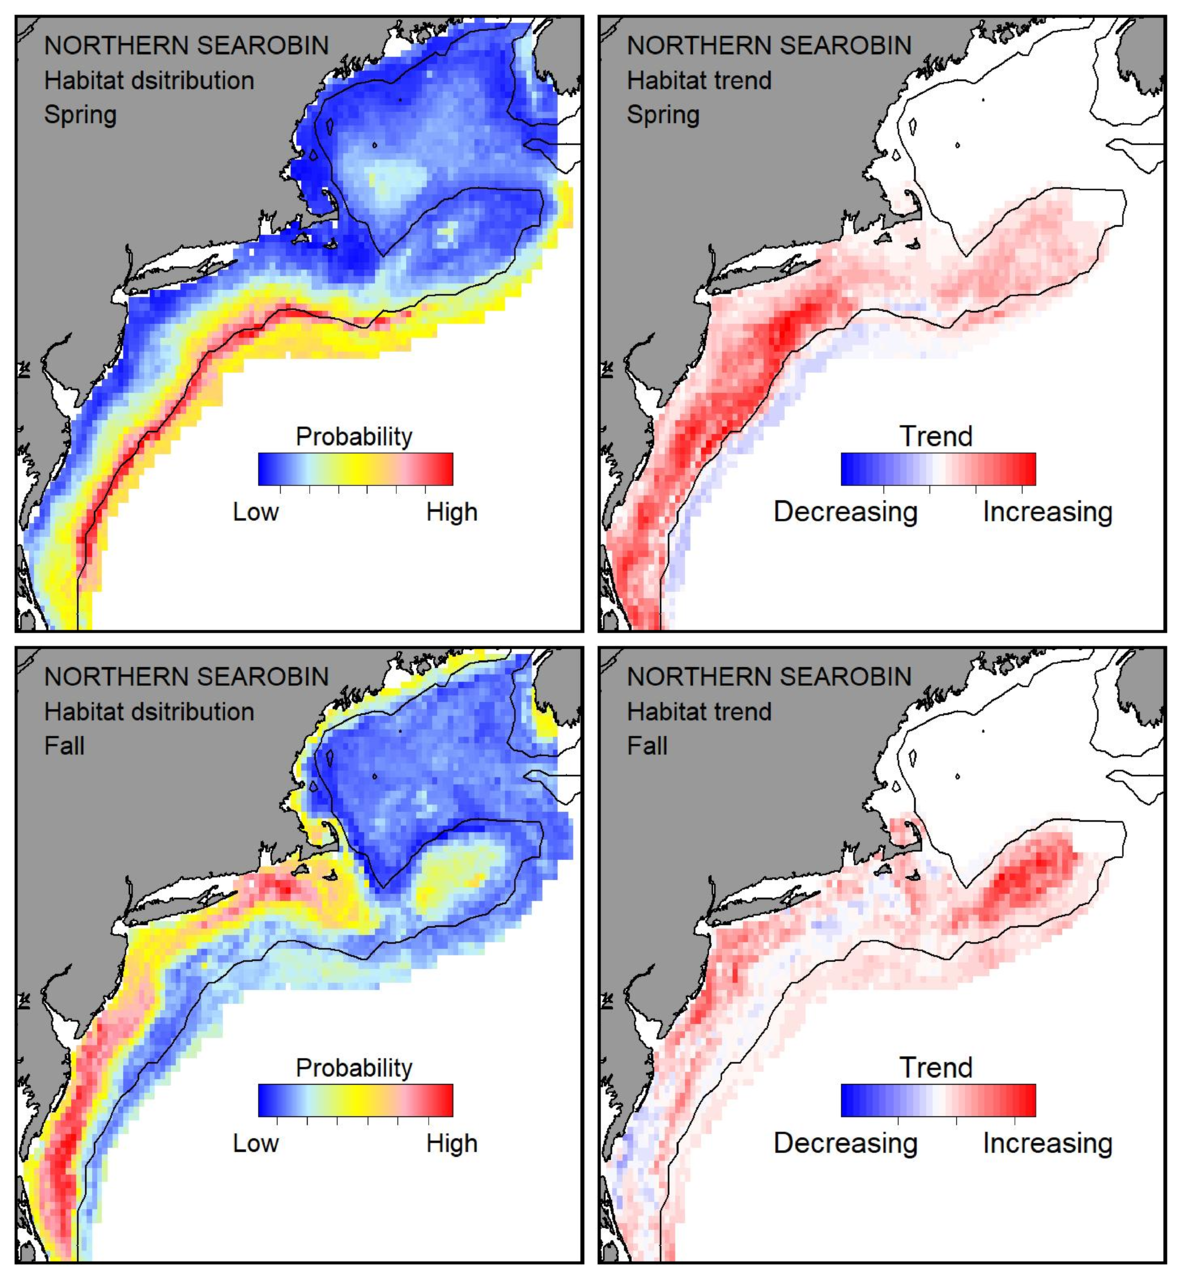 Probable habitat distribution for northern searobin showing the highest concentration and increasing trend in the Gulf of Maine during the spring. Bottom row: Probable habitat distribution for northern searobin showing the highest concentration and increasing trend in the Gulf of Maine during the fall.